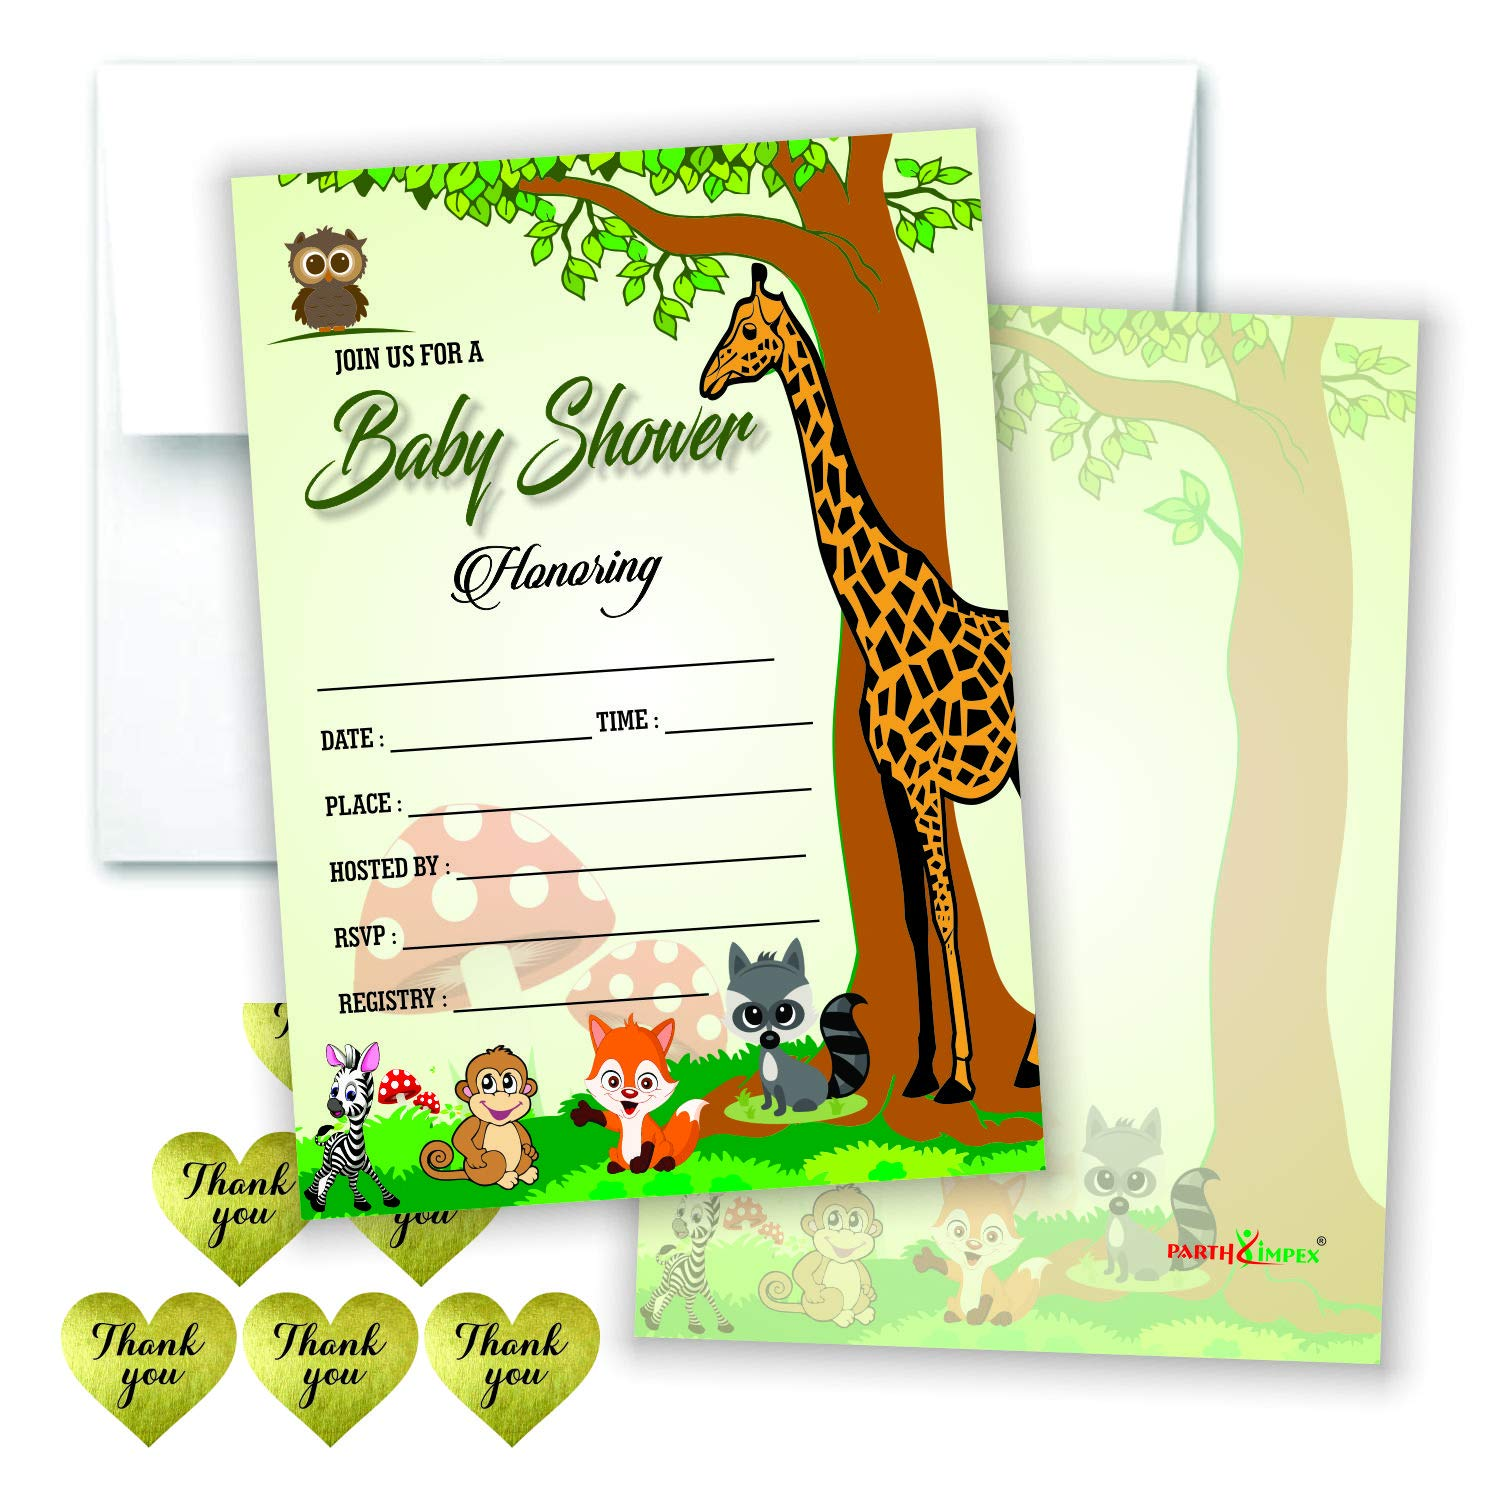 Woodland Baby Shower Invitations Girl or Boy (Set of 50) Fill in Style Blank Invite Cards with Envelopes and Thank You Stickers for Gender Reveal Party Neutral Unisex Design Owl and Forest Animals